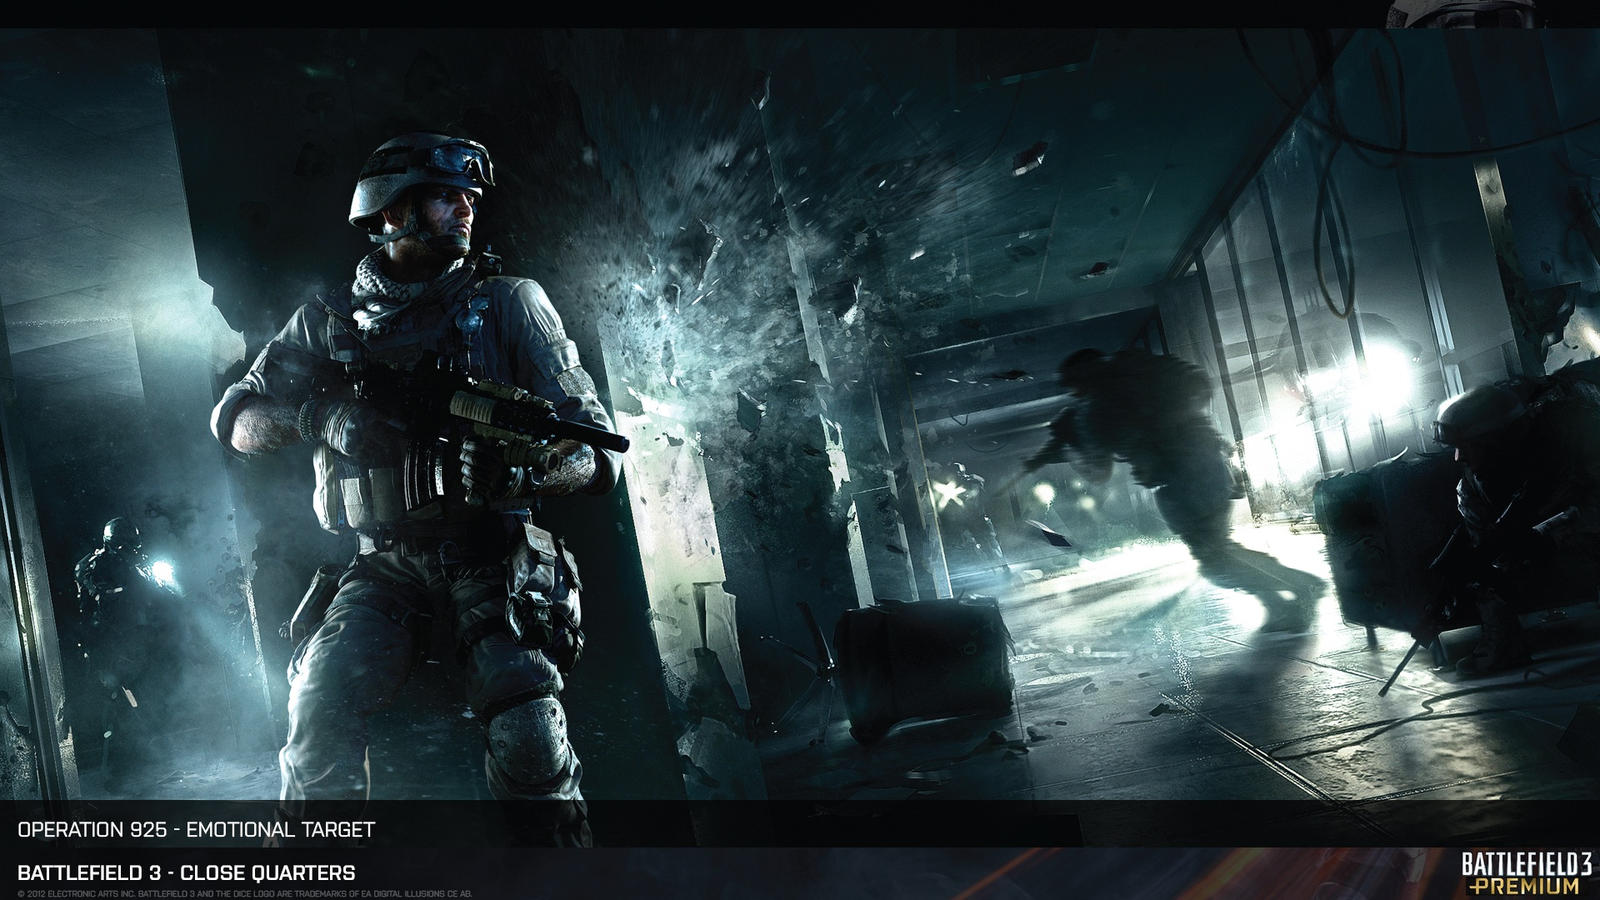 Battlefield 3 wallpaper hd impremedia battlefield 3 artwork operation 925 hd by pixero111 voltagebd Images